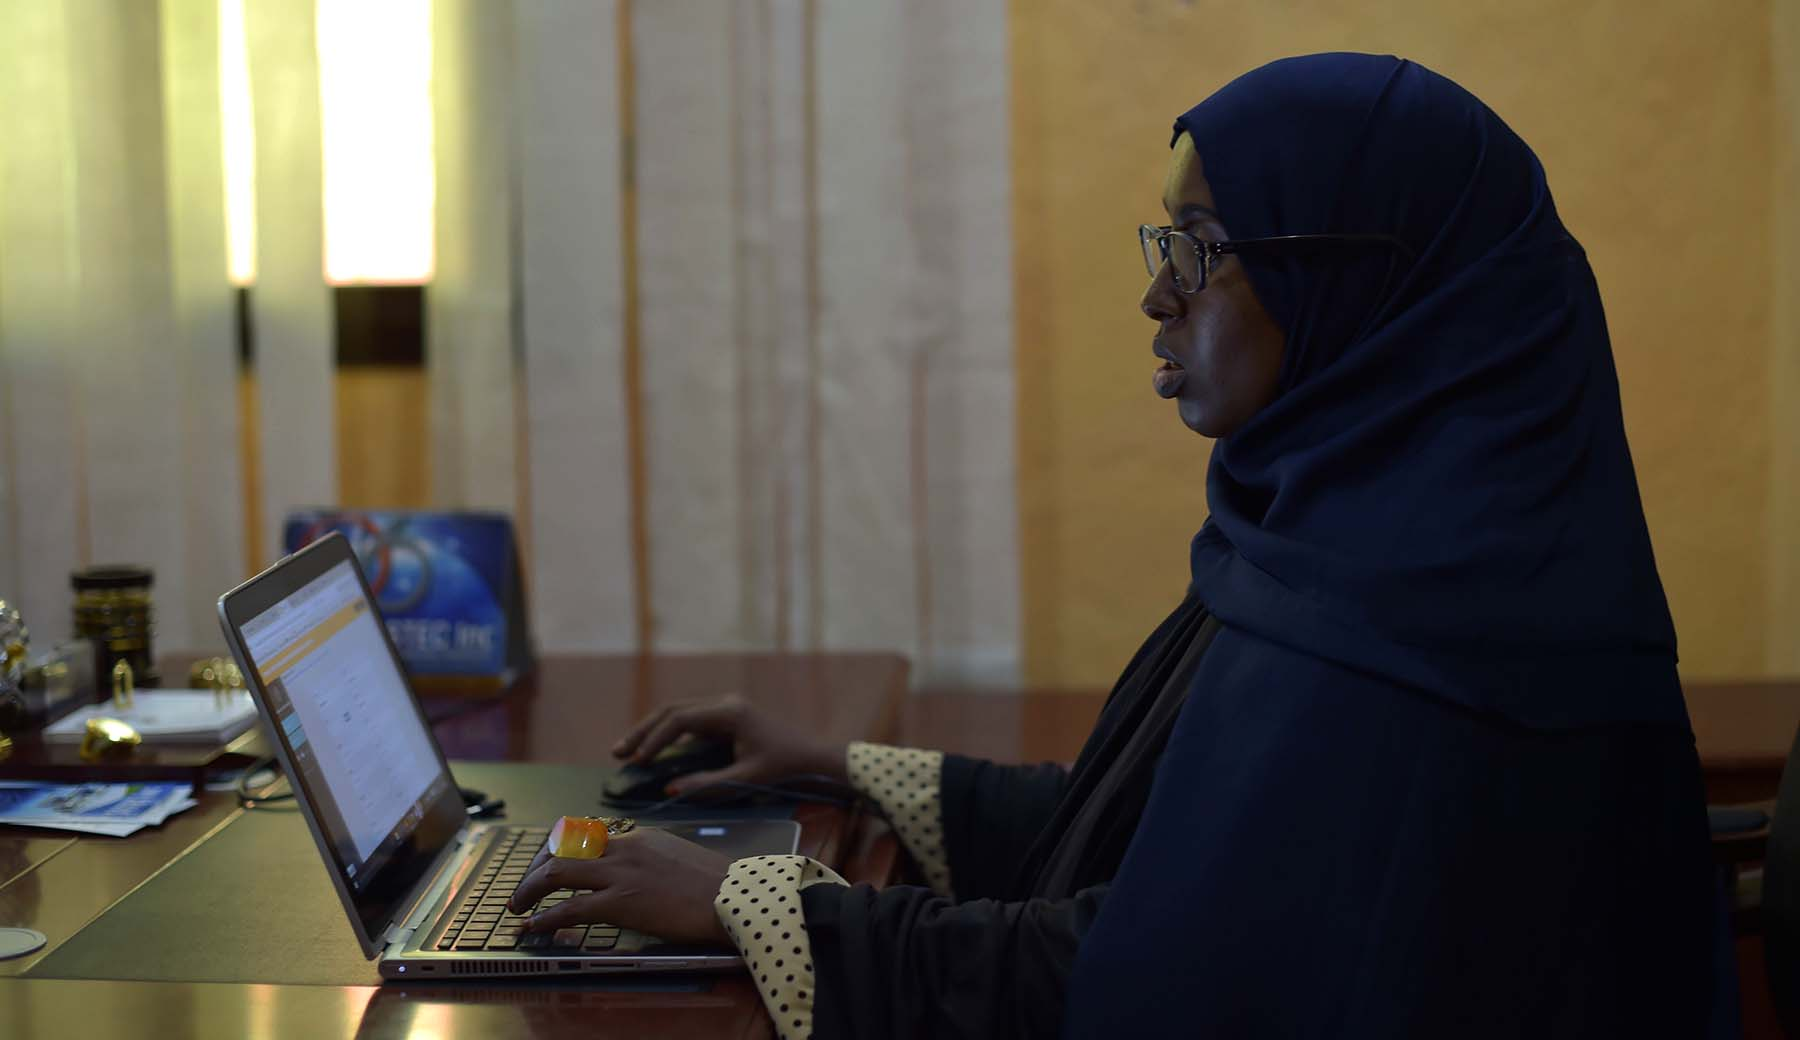 Photo of Sahra Abdikarim Ibrahim using a laptop computer.